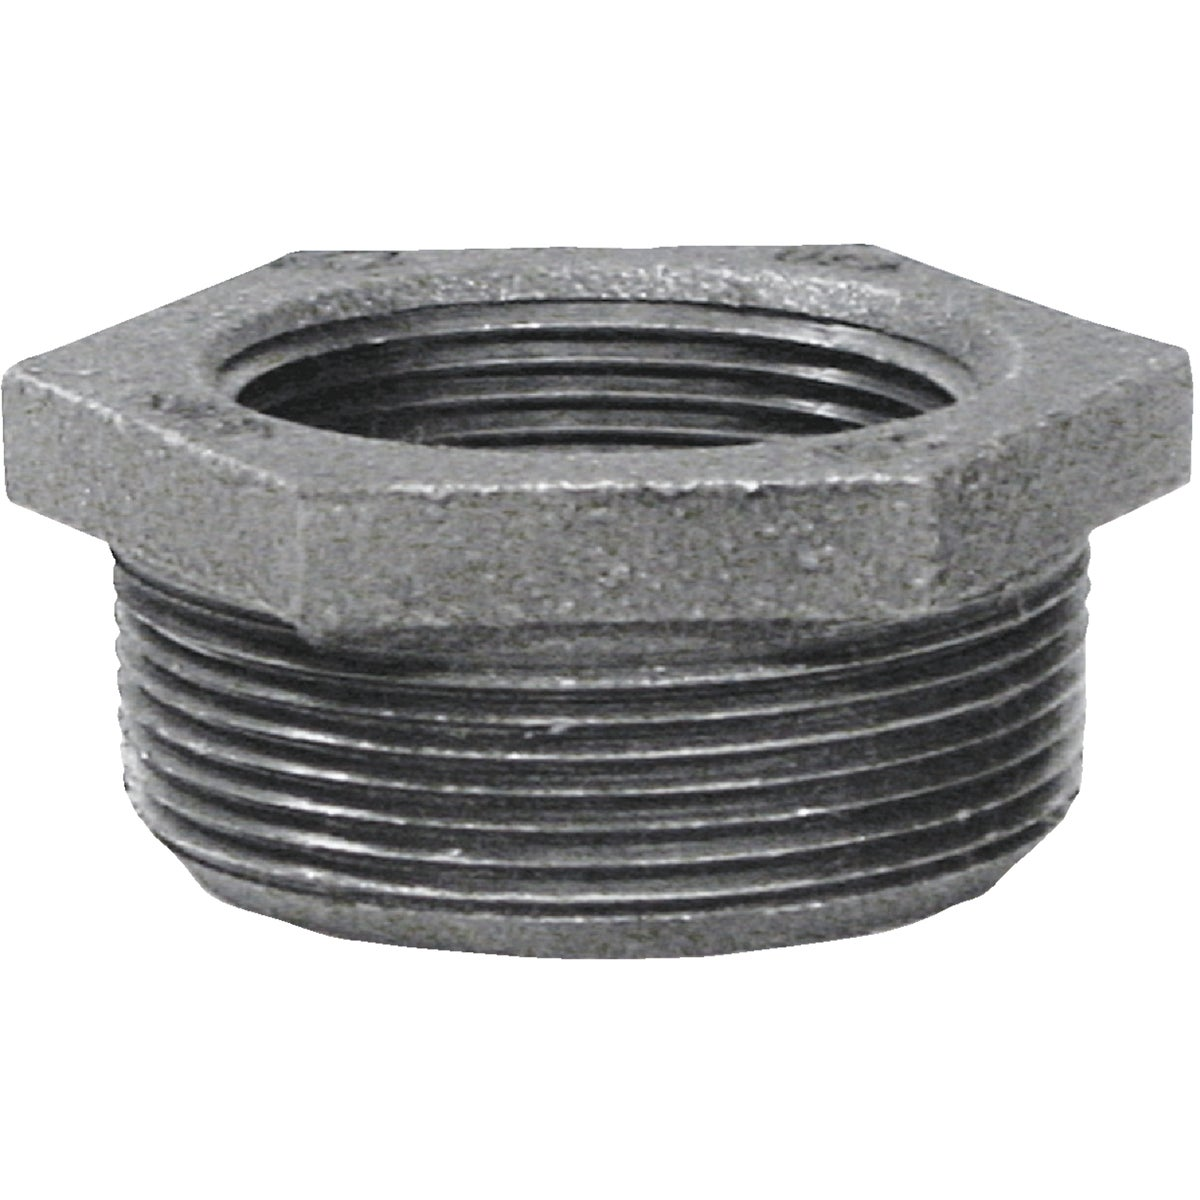 1X3/4 BLK BUSHING - 8700129359 by Anvil International